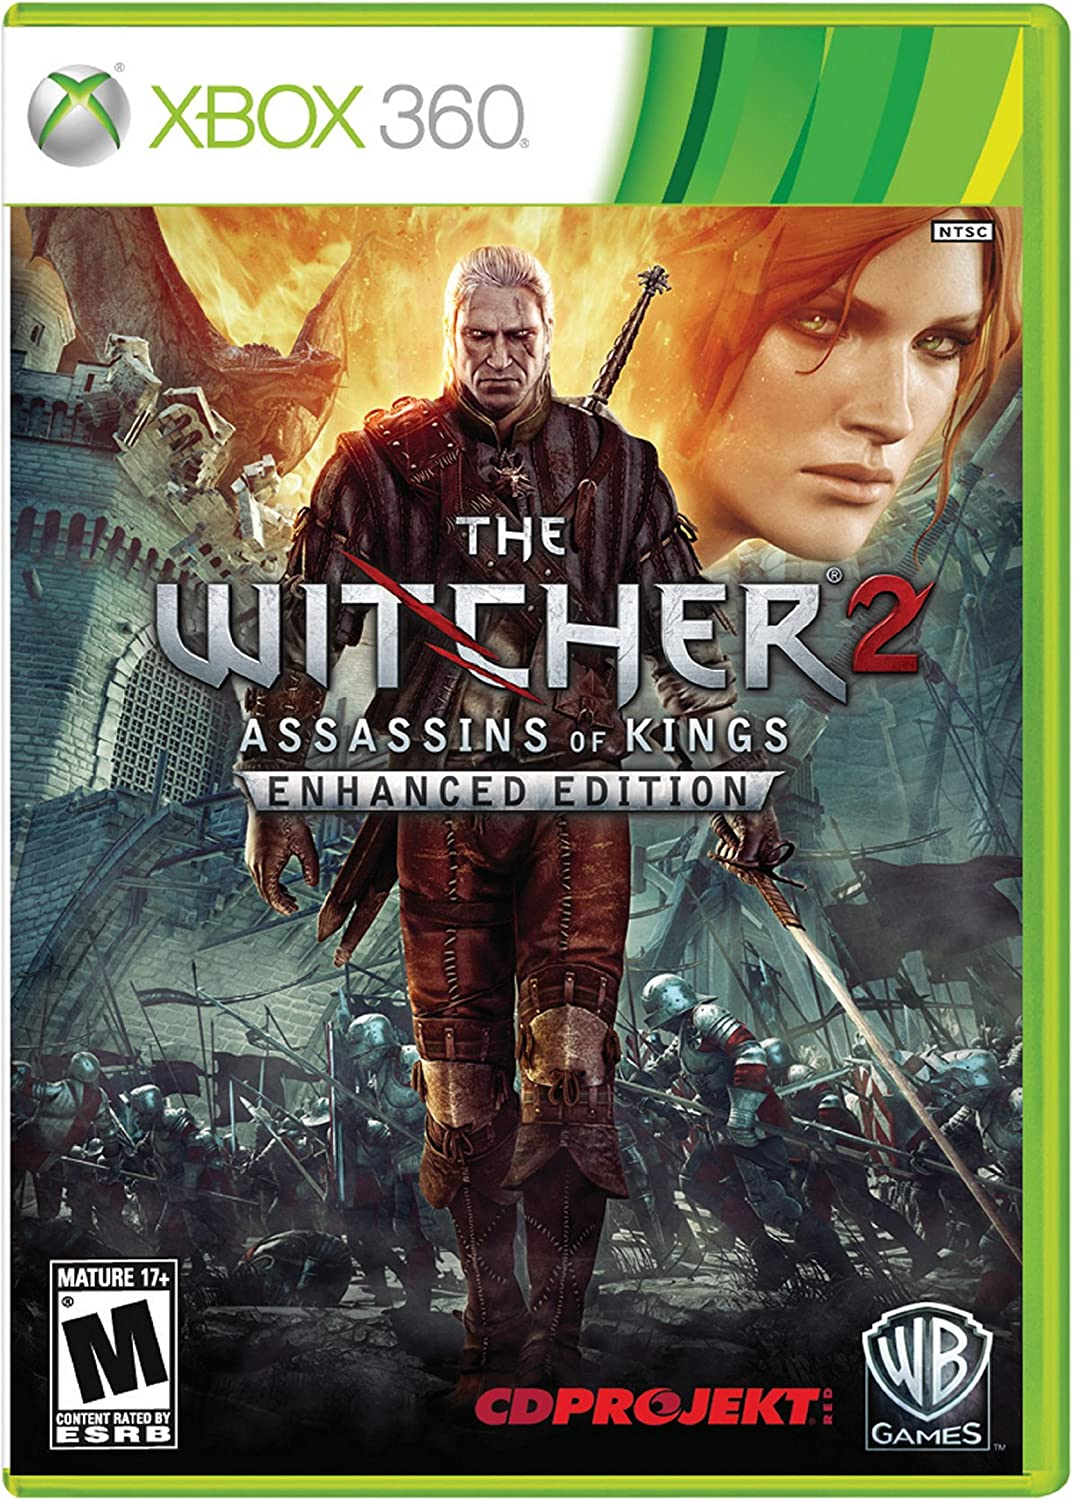 The Witcher Year-end annual account 2: Assassins Edition Enhanced Kings wholesale of